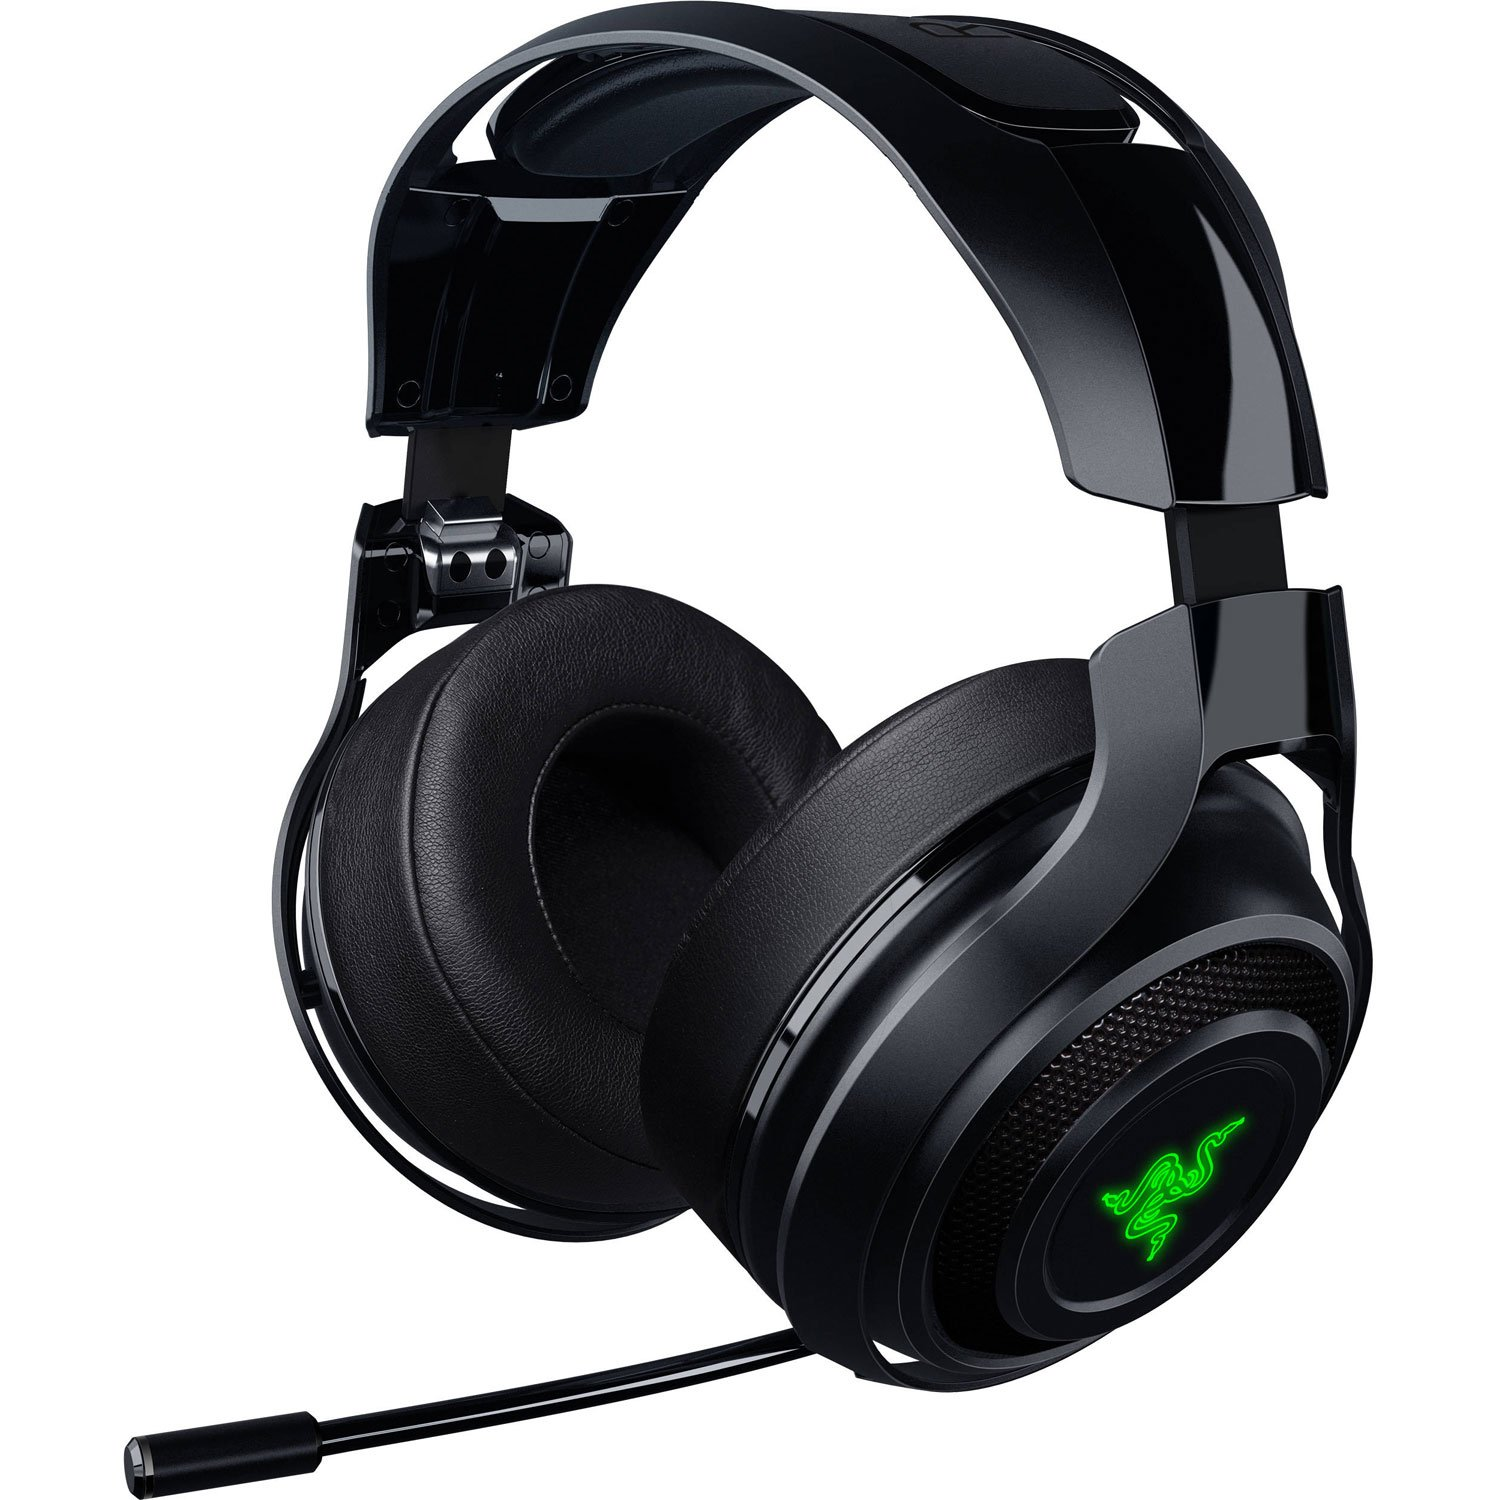 Razer ManO'War Wireless 7.1 Surround Sound Gaming Headset Compatible with PC, Mac, Steam Link and works with Playstation 4 by Razer